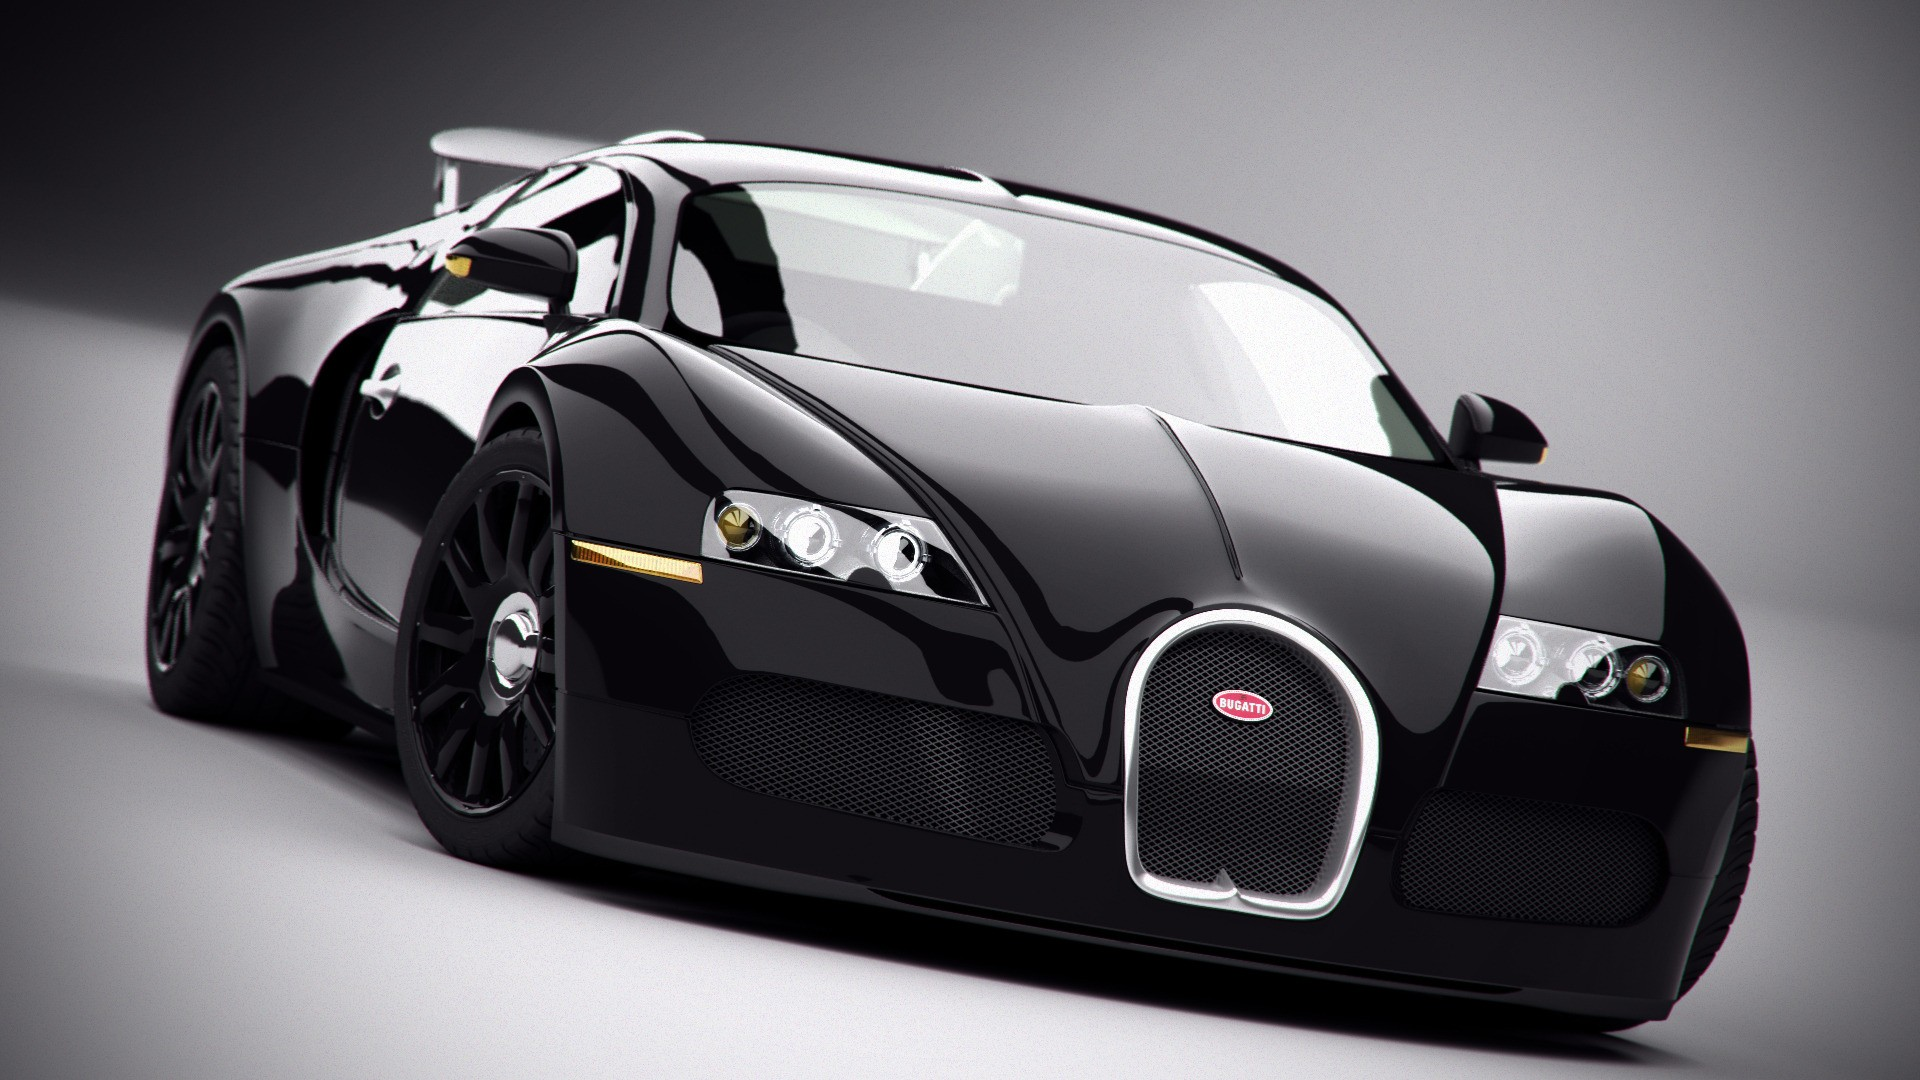 Mesmerizing Cars Wallpapers Bugatti Veyron Wallpaper Backgrounds 1920x1080px